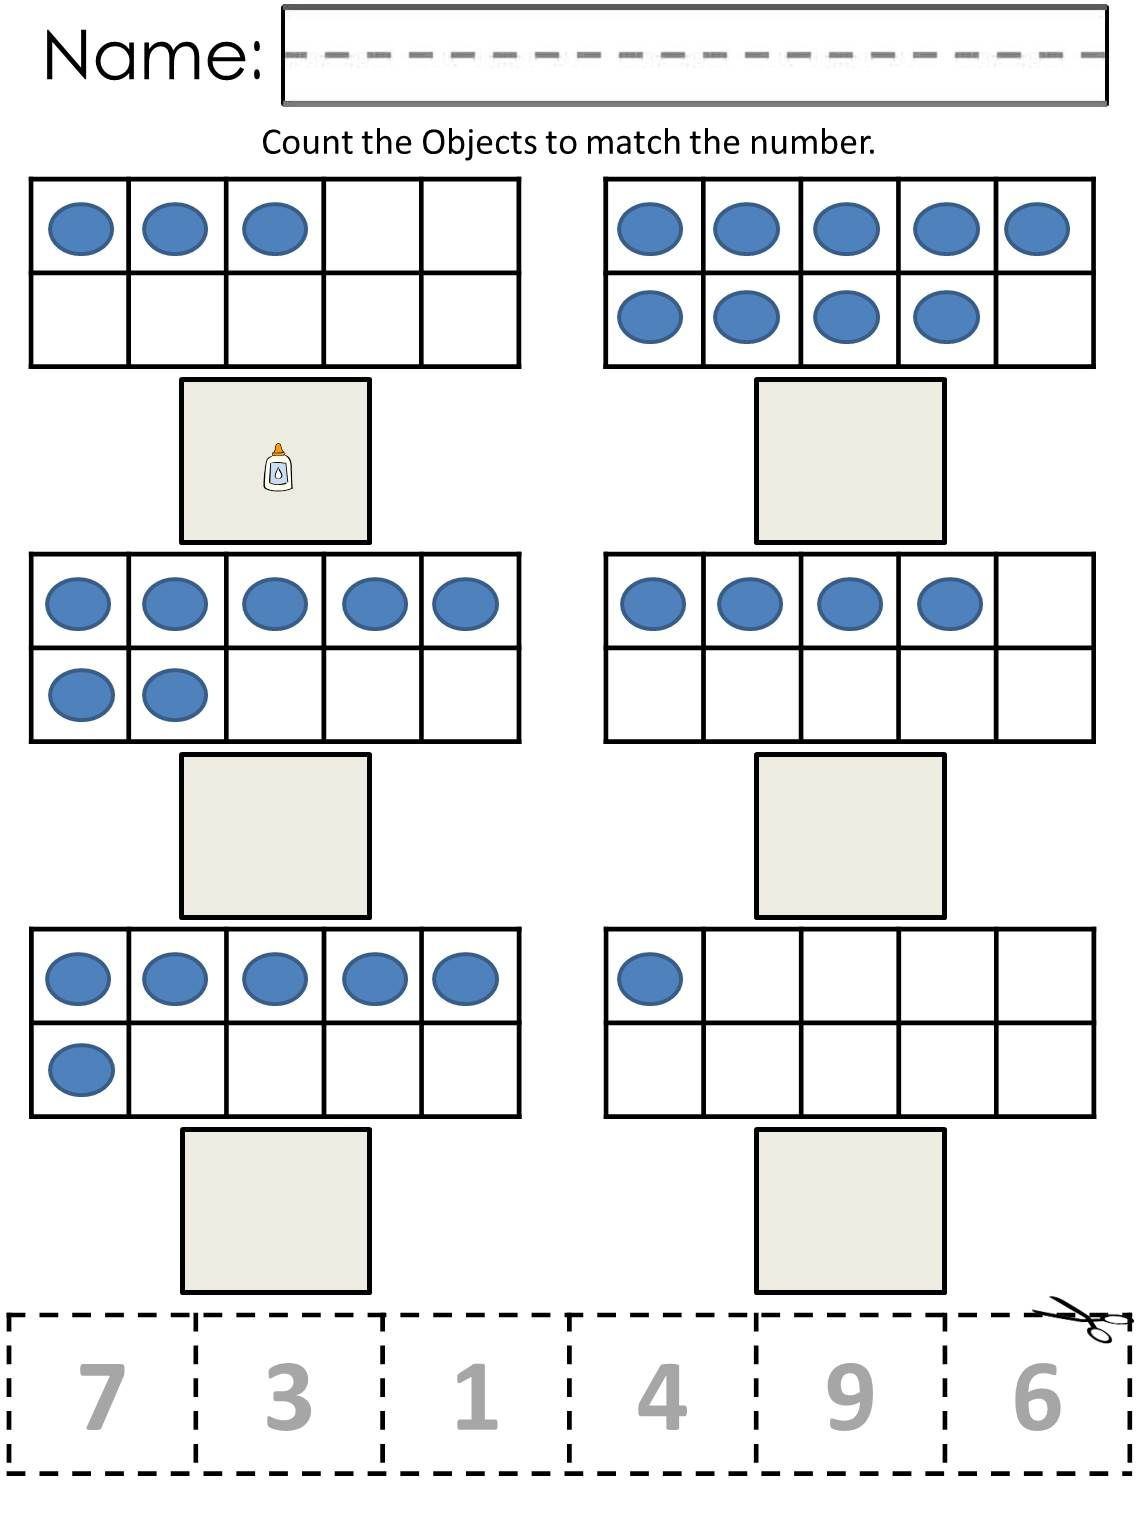 worksheet Ten Frames Worksheets ten frame counting worksheets now available at www autismcomplete com